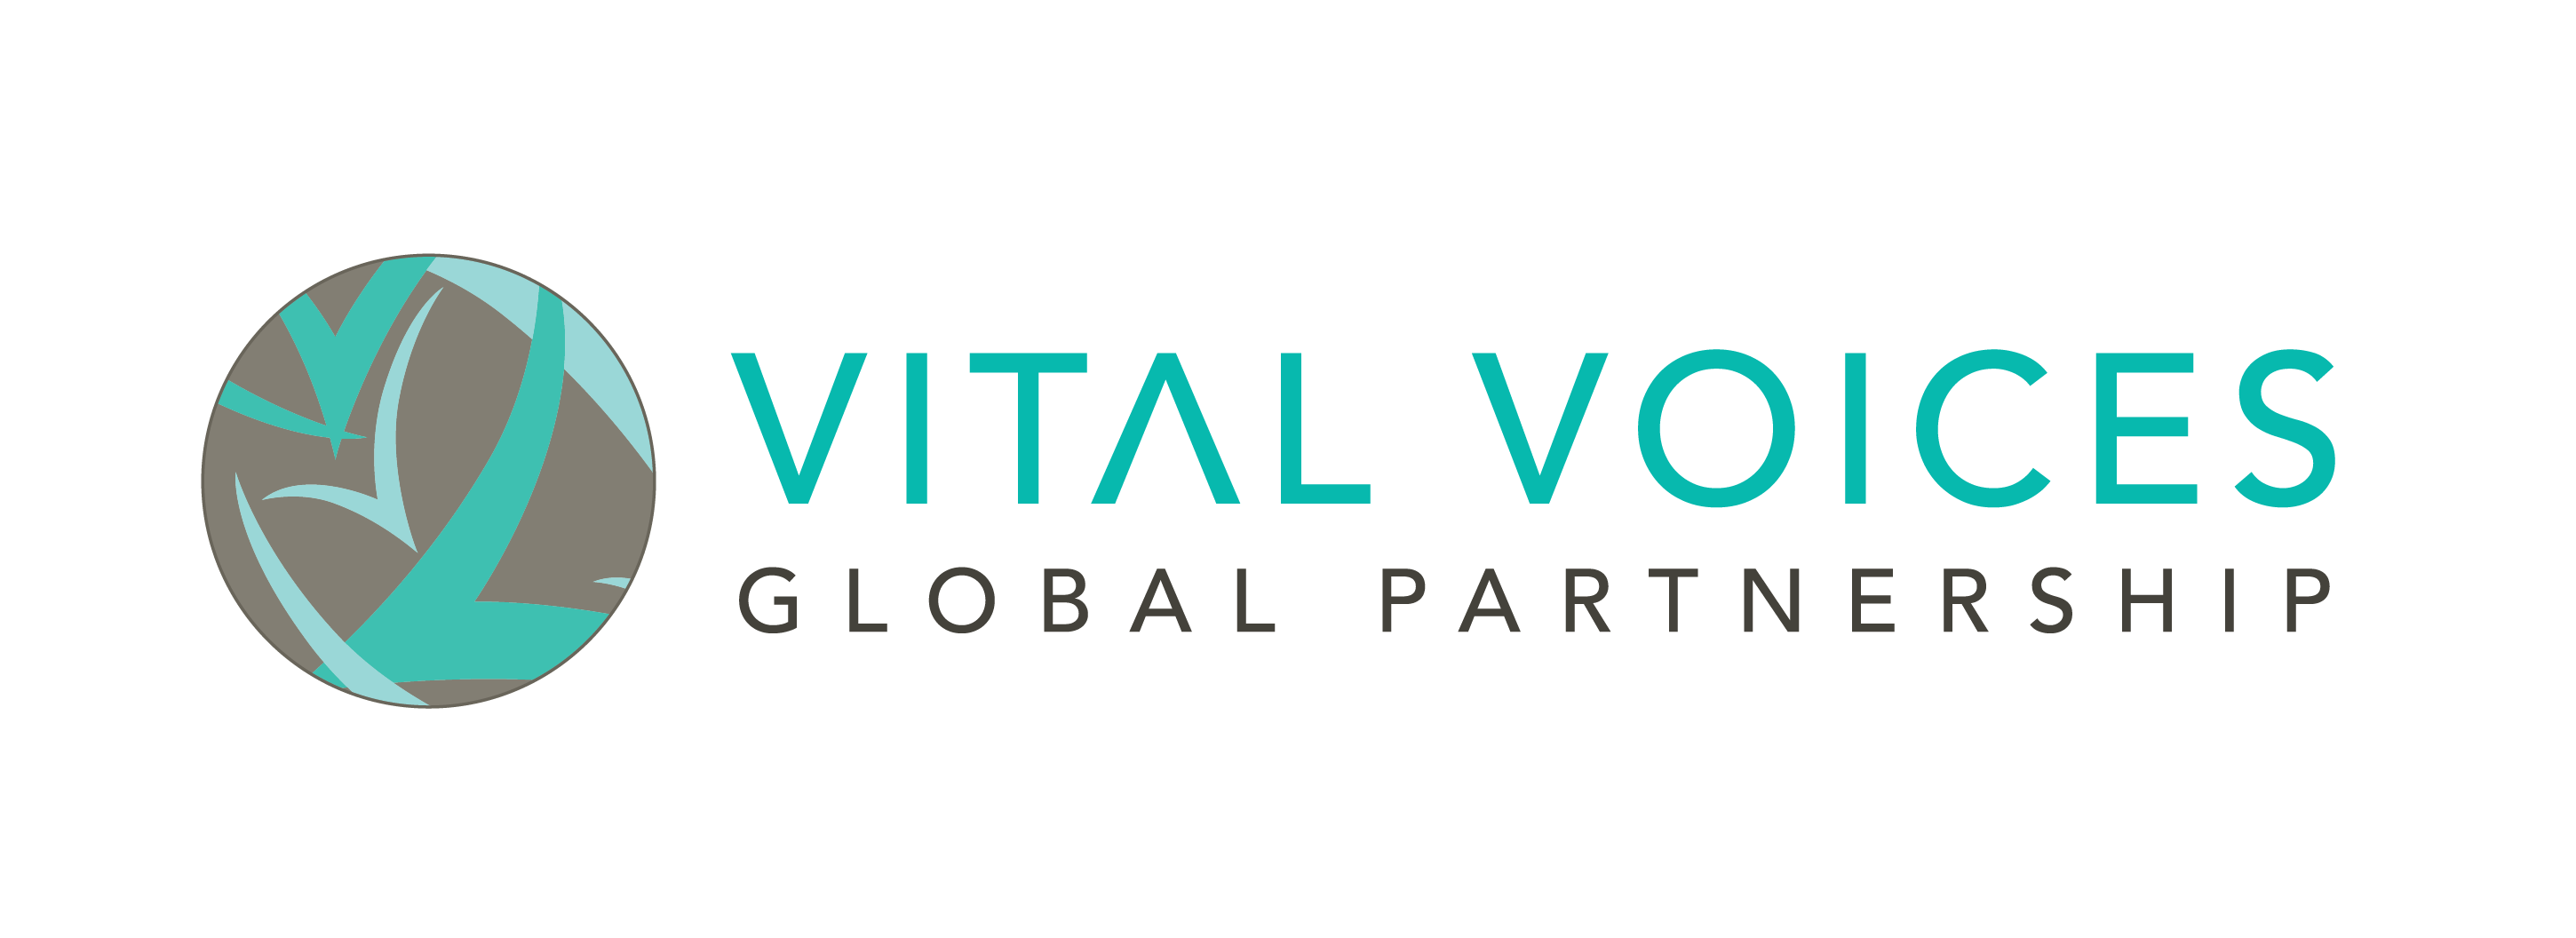 Vital Voices - logo